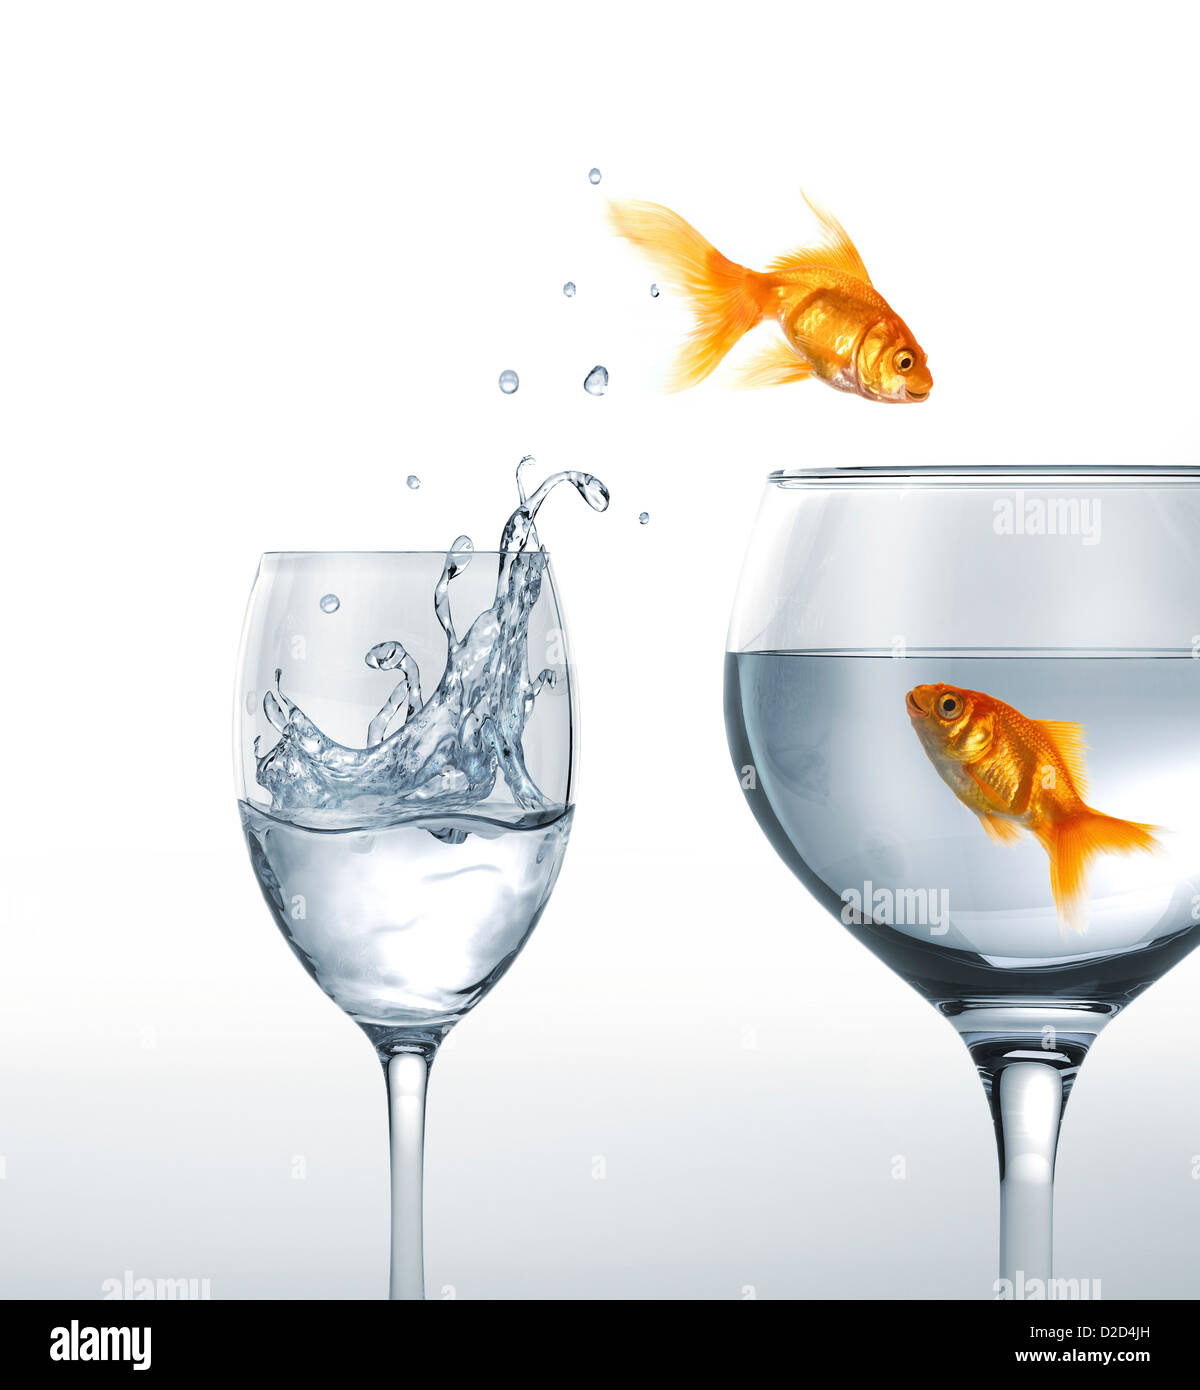 Jumping goldfish artwork Photo Stock